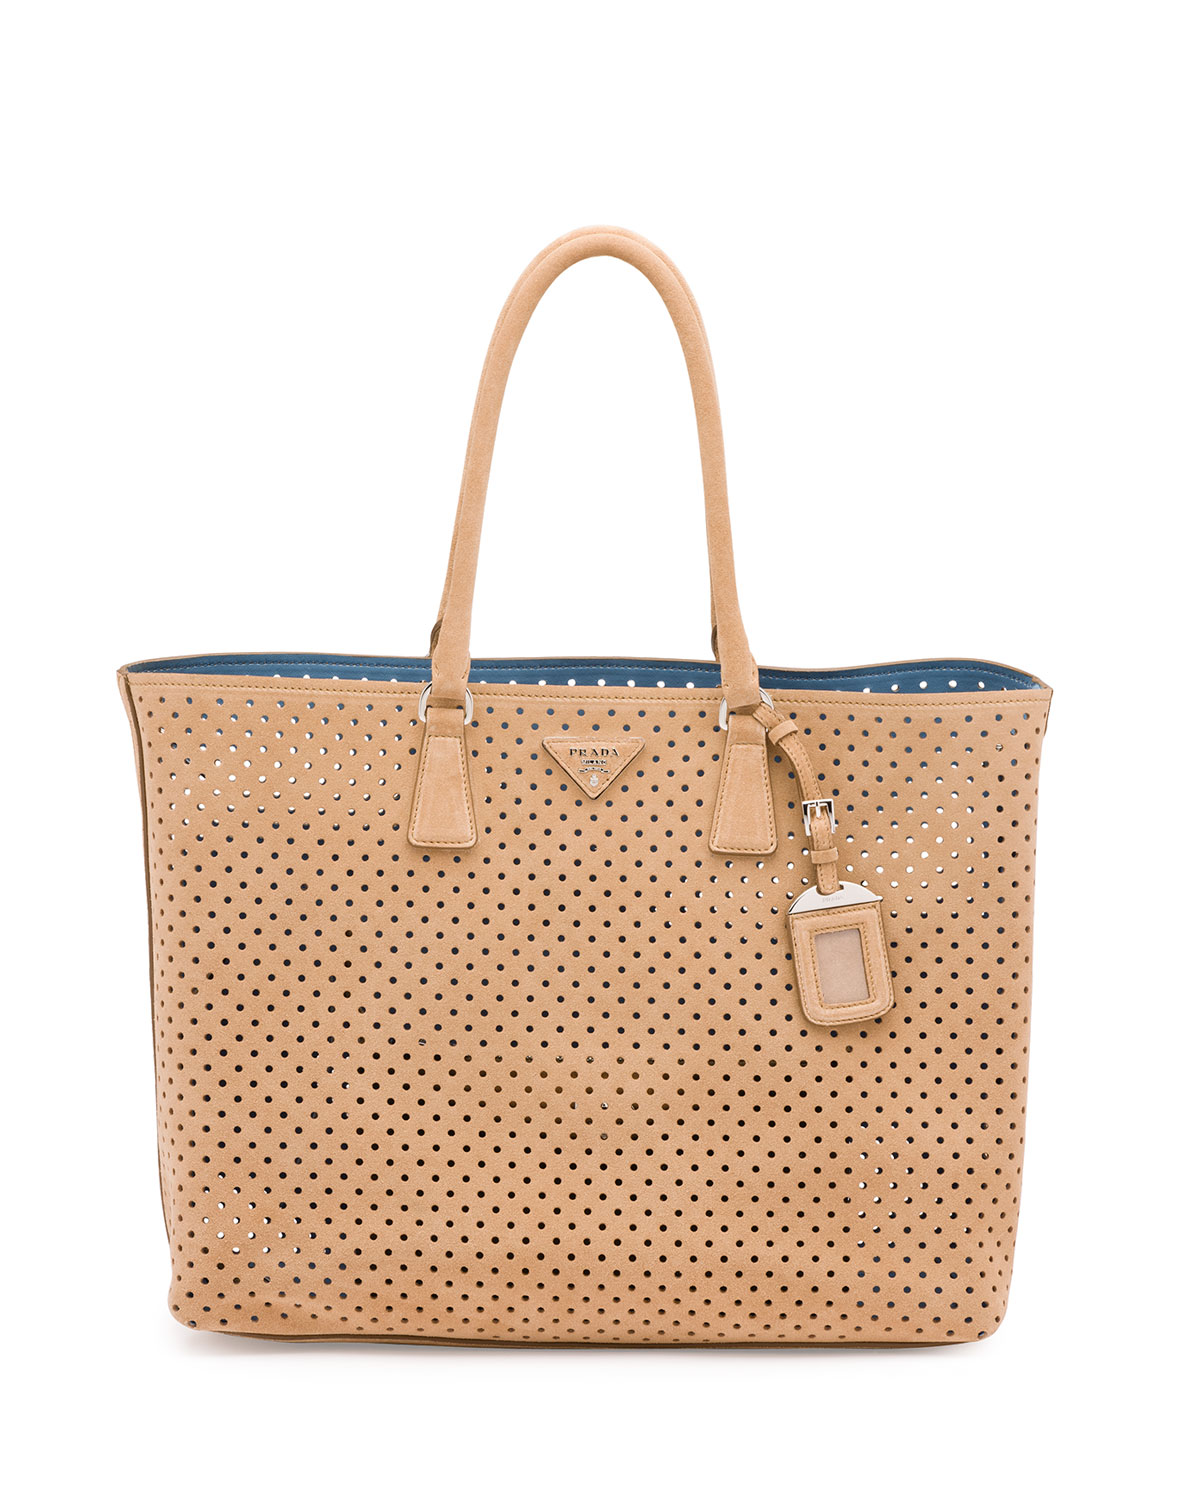 Prada Suede Perforated Tote Bag e9d969957b12e